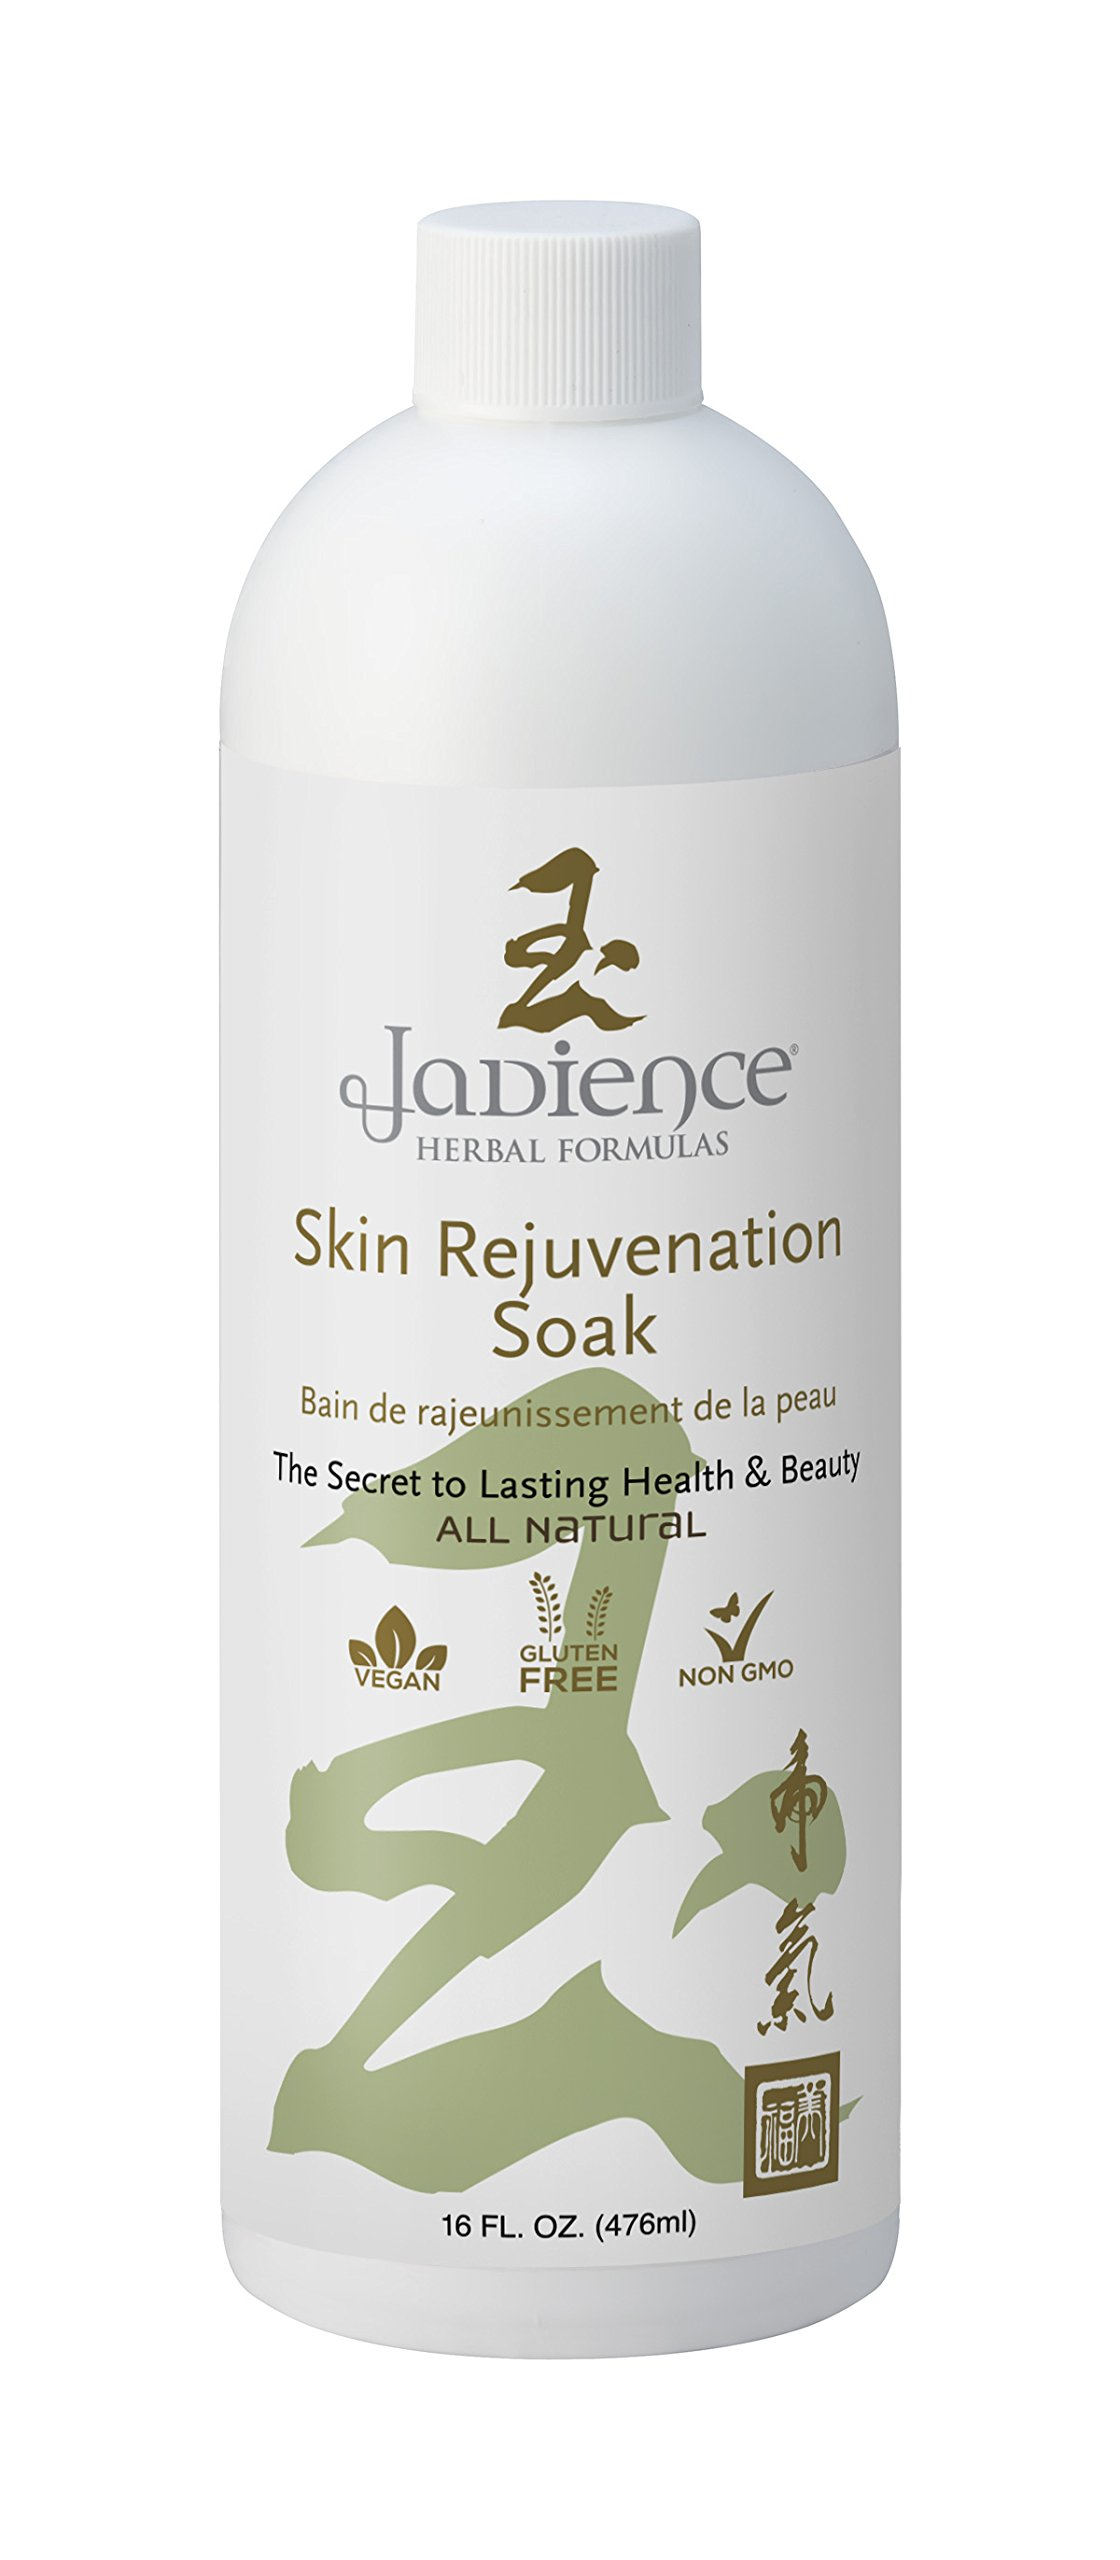 Skin Rejuvenation Acne Body Wash Bath Soak for Women & Men by Jadience: 16oz | Natural Liquid Formula for Bubble Bath or Foot Soaking | Relieve Dry Irritated Skin, Stress, Fatigue & Muscle Joint Pain